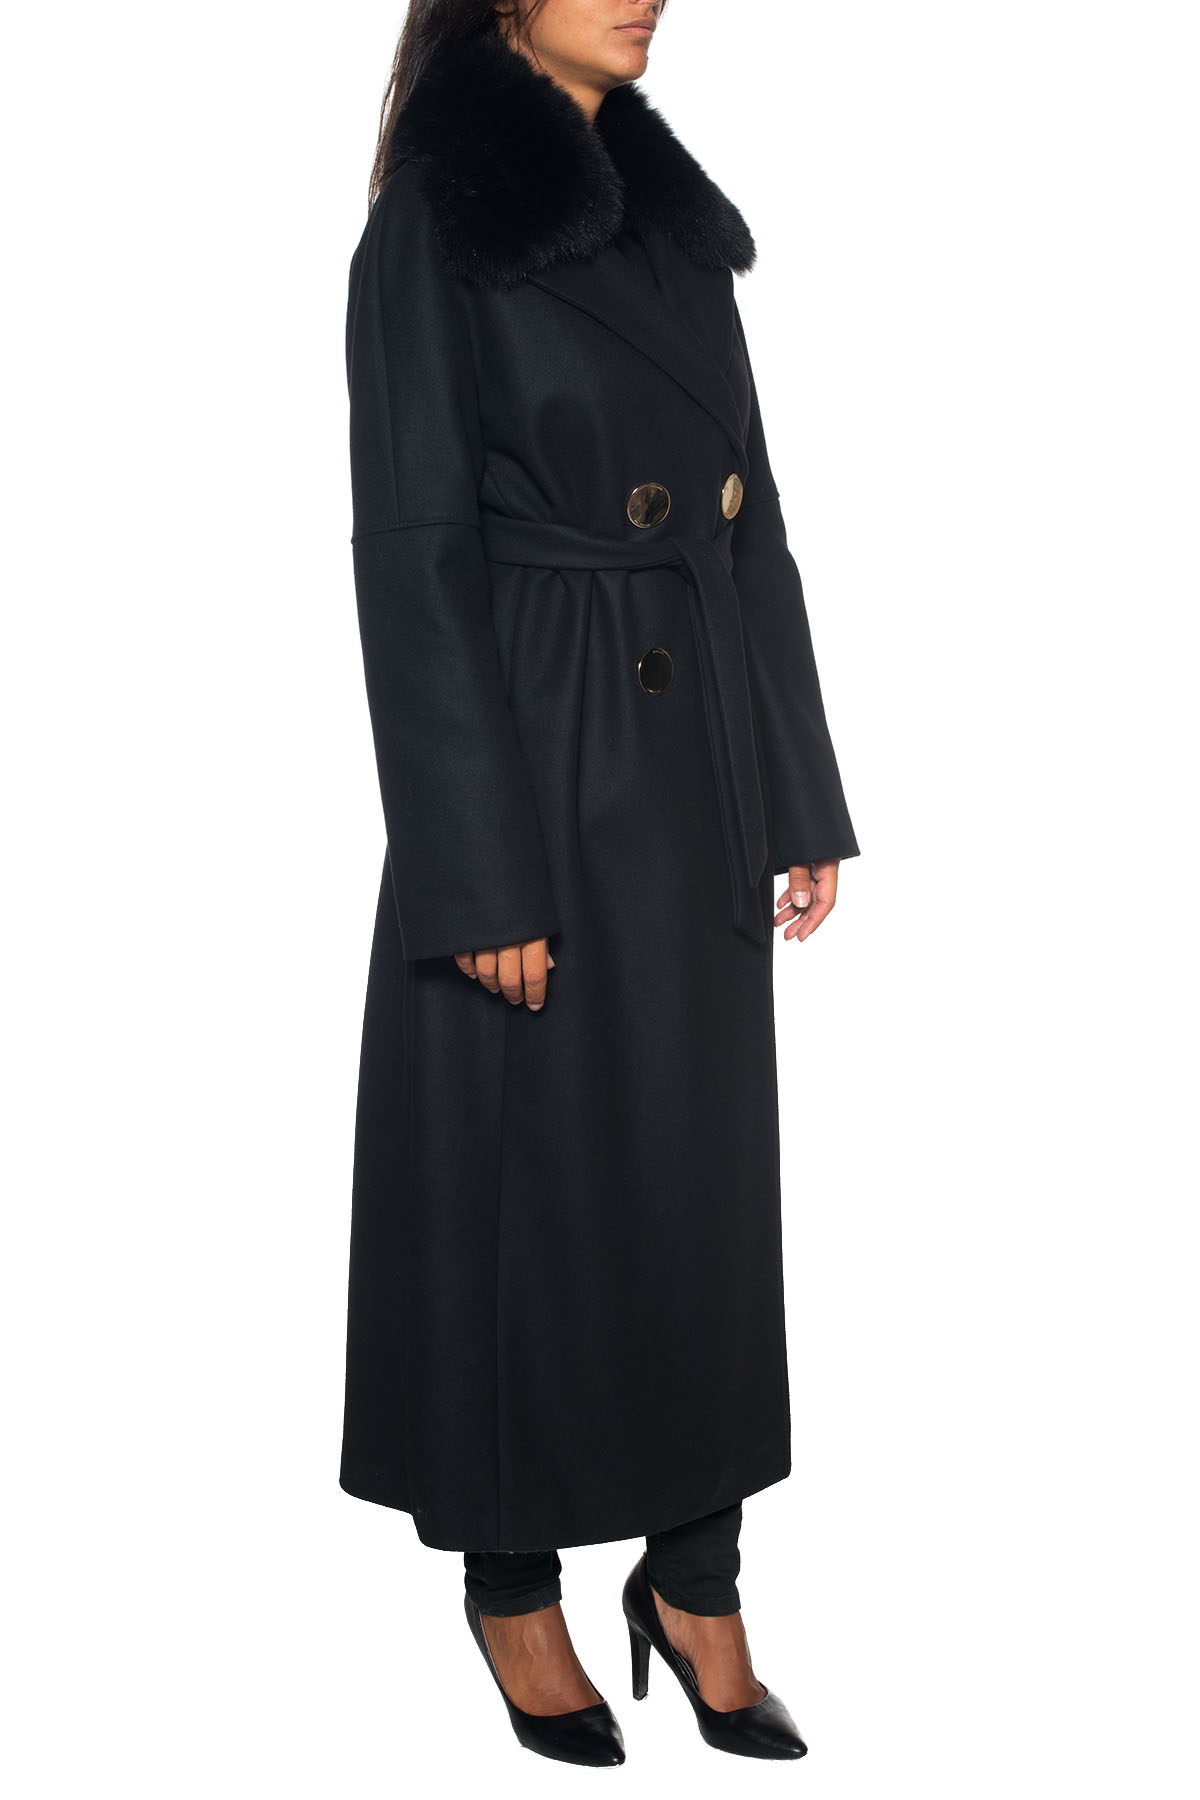 Long Coat - Versace Collection - ScaglioneIschia 15db9c1b906